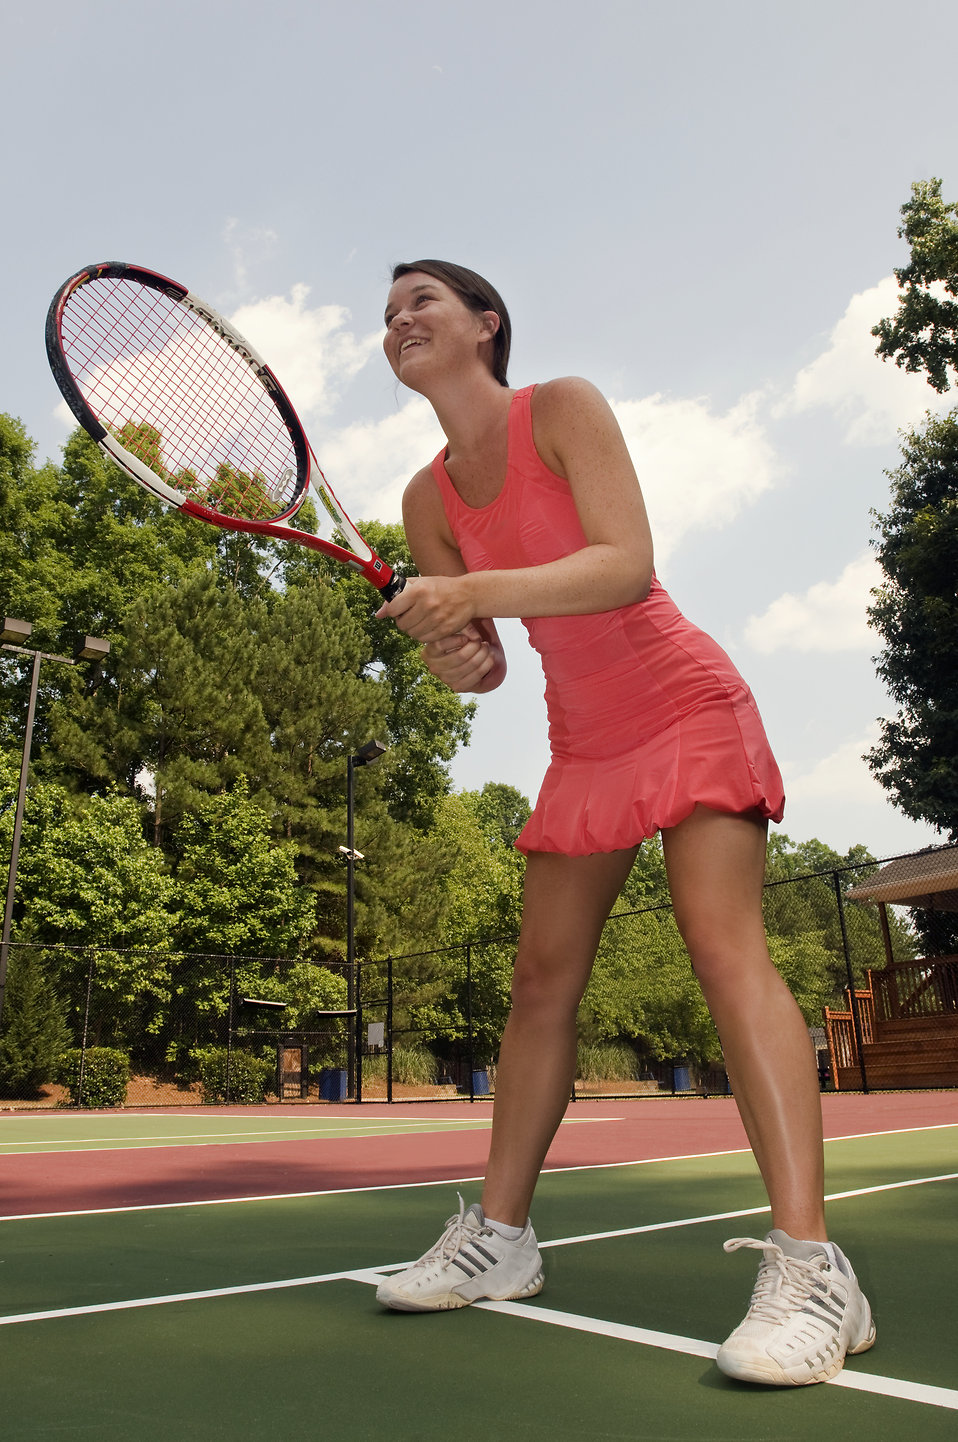 A woman playing tennis : Free Stock Photo